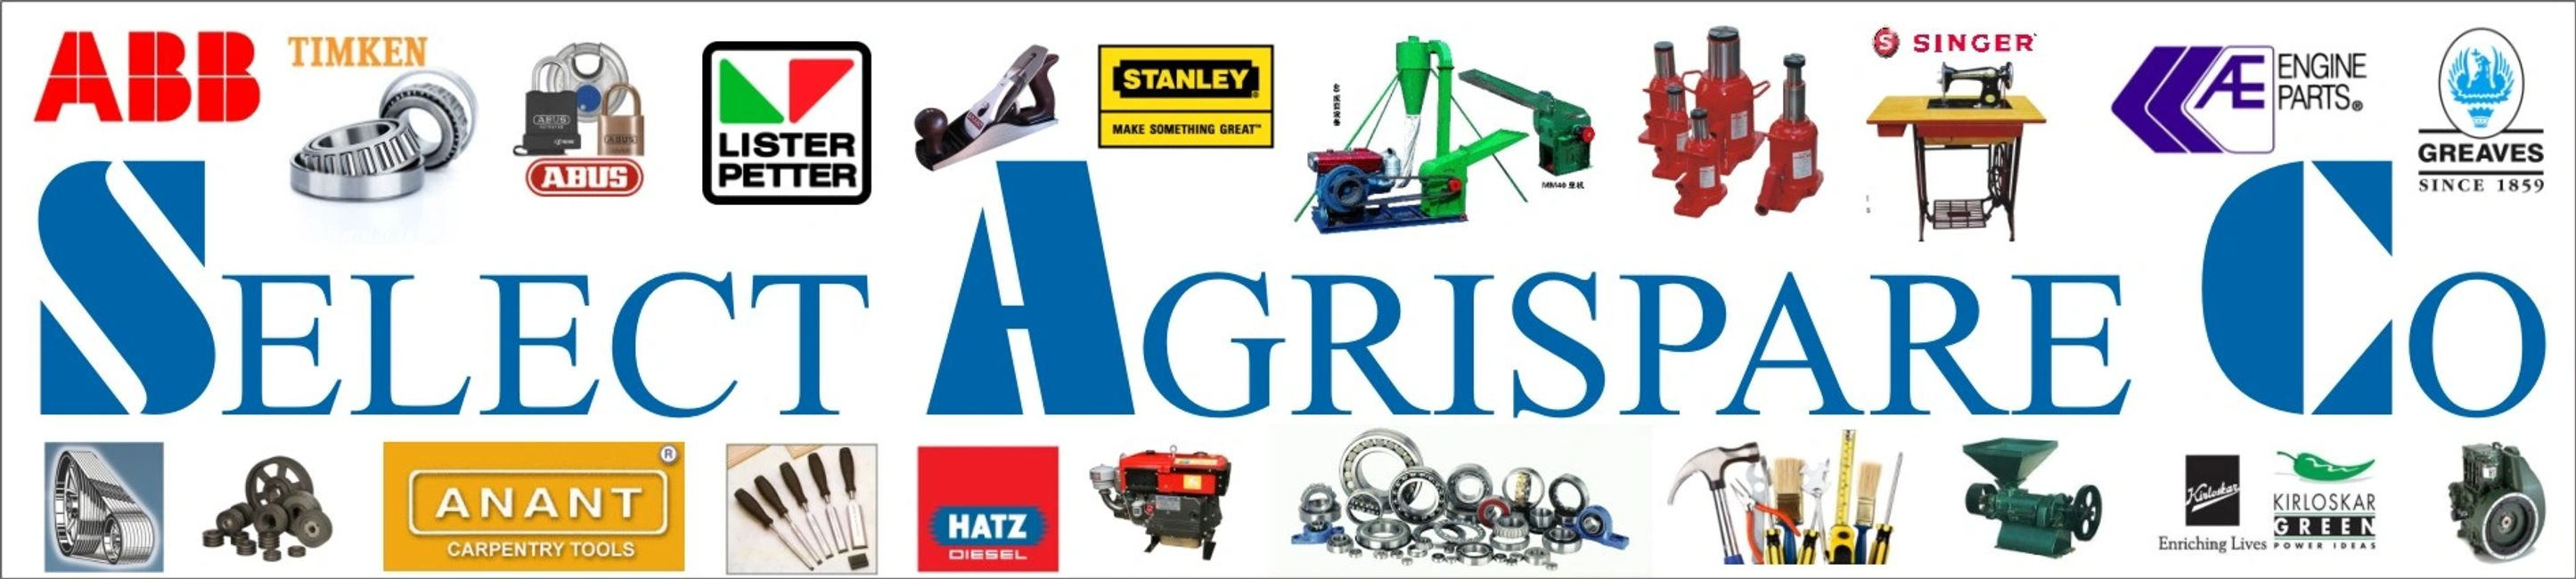 Select Agrispare Co Maize Mills  Diesel Engines Vee Belts Irrigation Pumps Sewing Machine Hardware